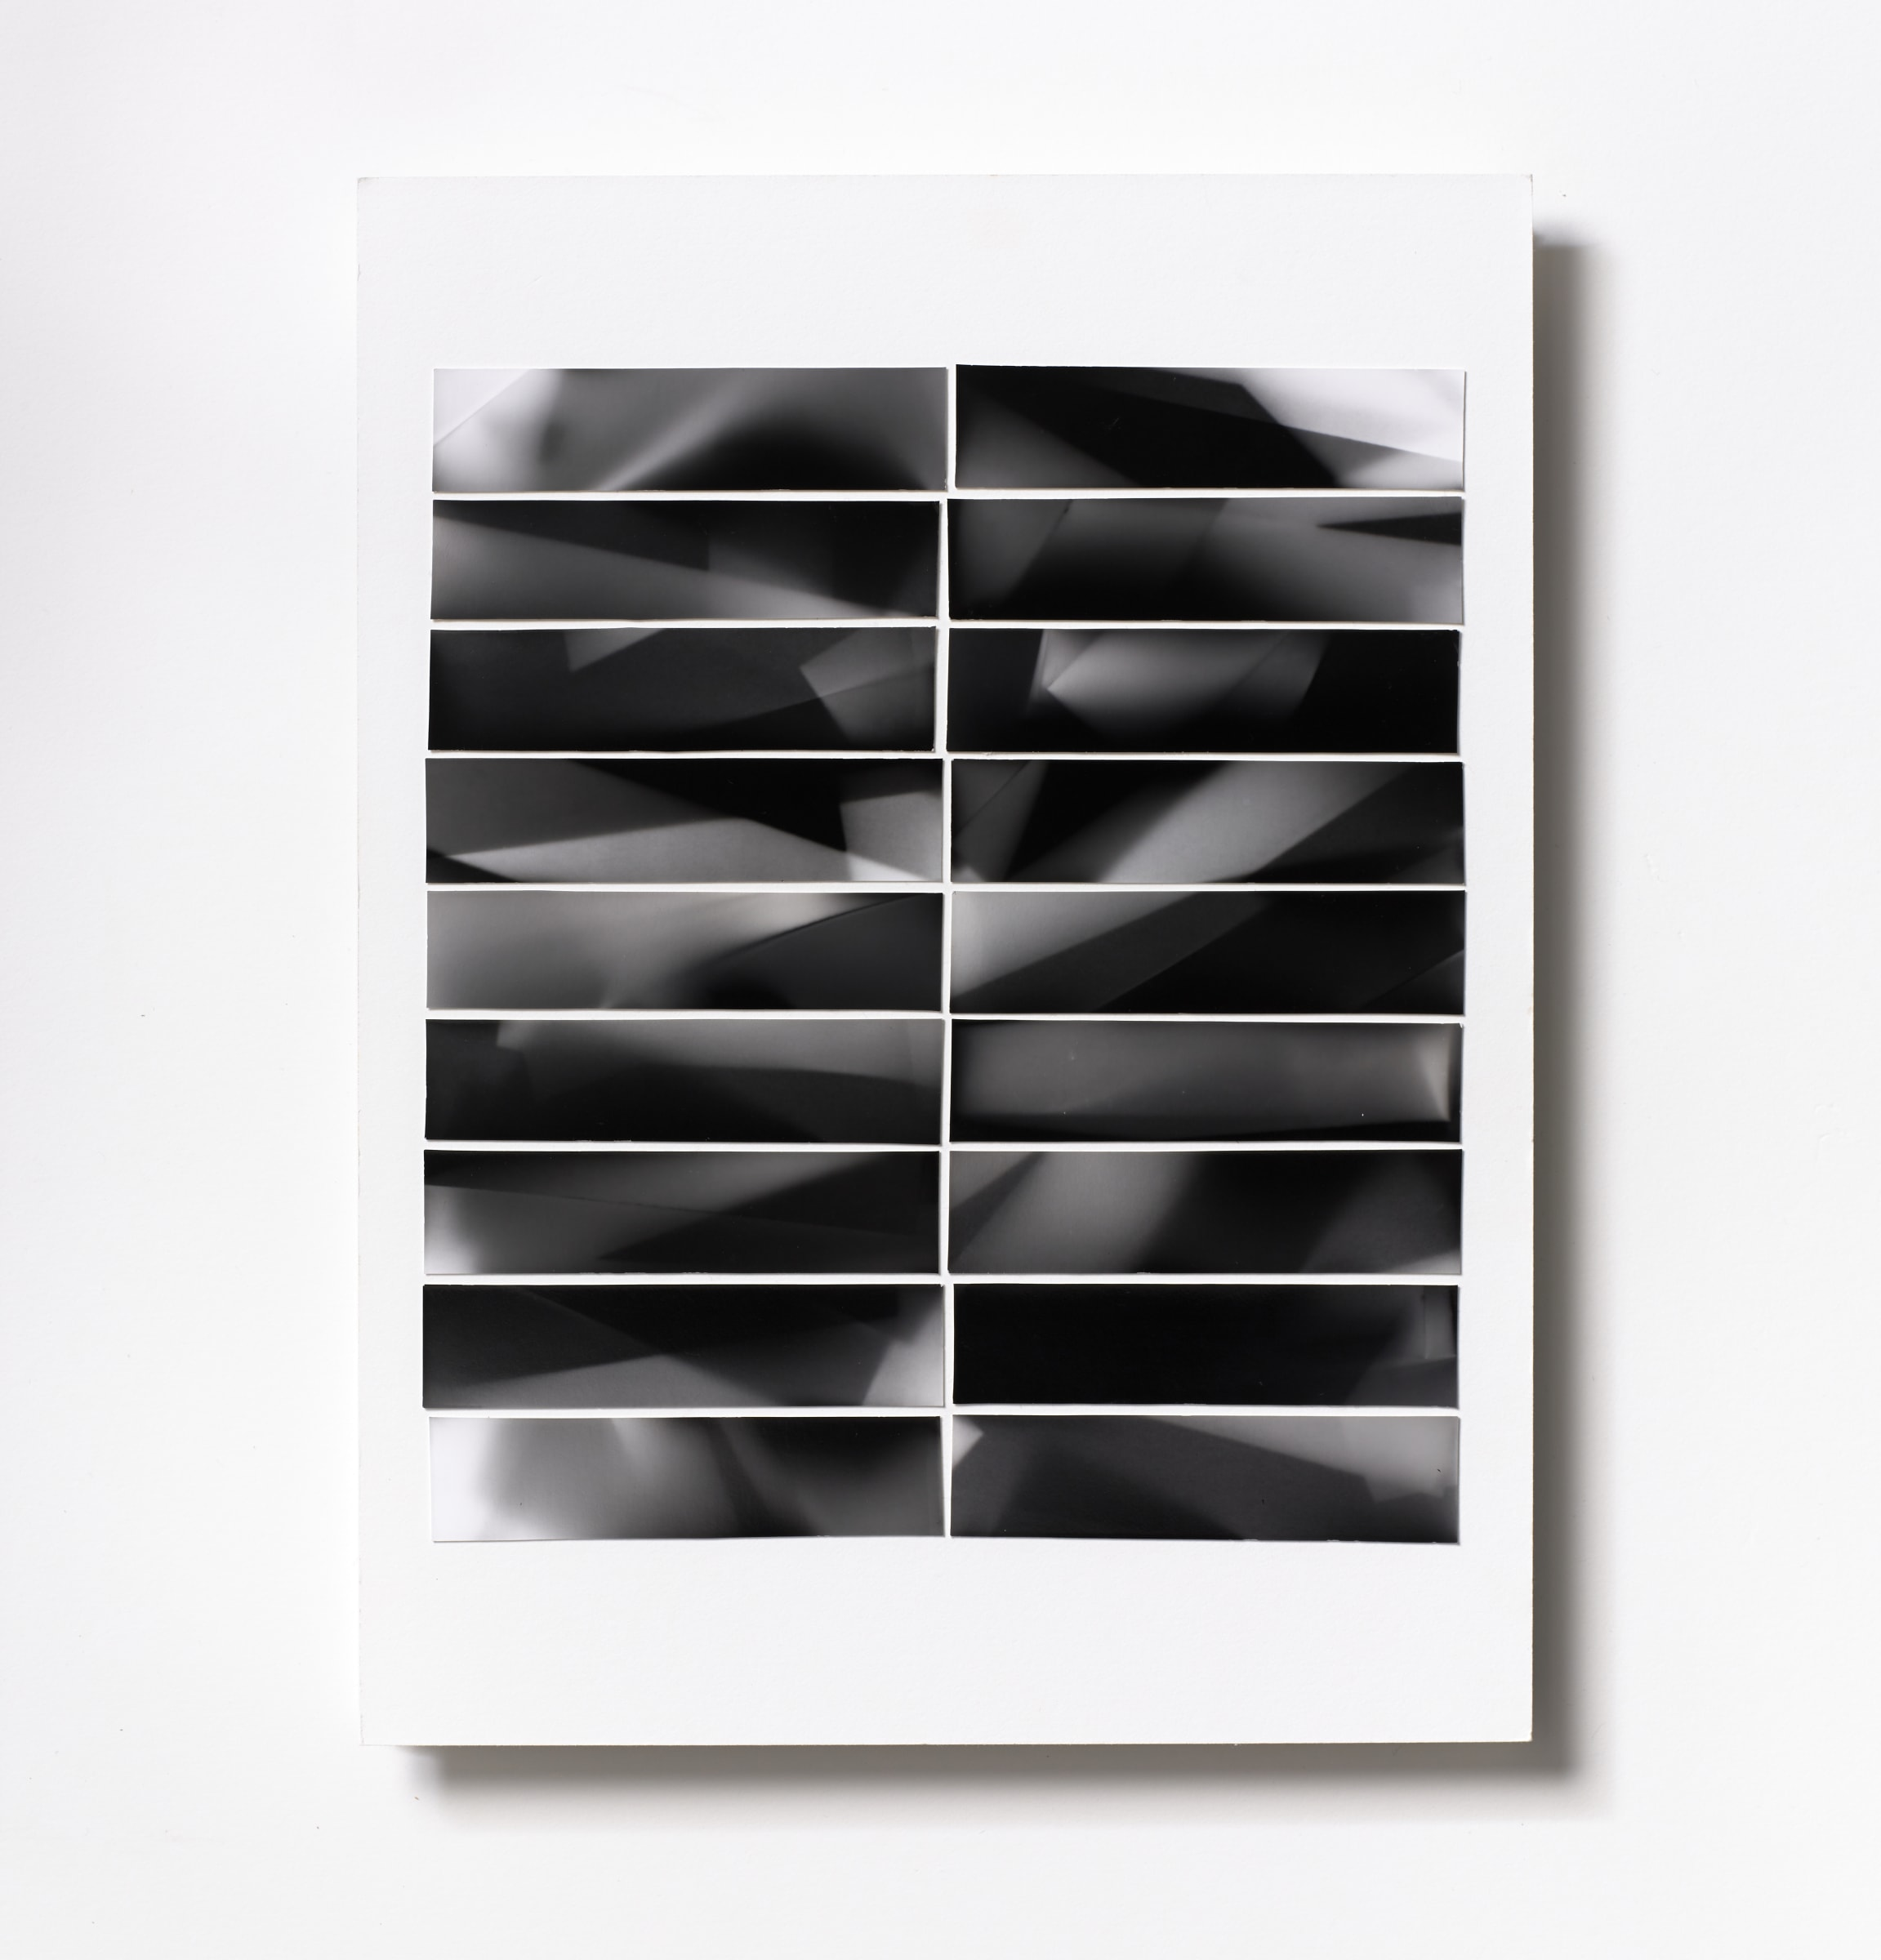 "<span class=""link fancybox-details-link""><a href=""/content/feature/121/artworks553/"">View Detail Page</a></span><div class=""medium"">Silver Gelatin Photogram Print Collage of eighteen handmade 7/8"" x 3 7/8"" silver gelatin photograms on a 12 x 9 inch 8-ply museum board.<br /> Print only<br /> Unique</div> <div class=""dimensions"">30.5 x 22.9 cm<br /> 12 x 9 in</div>"